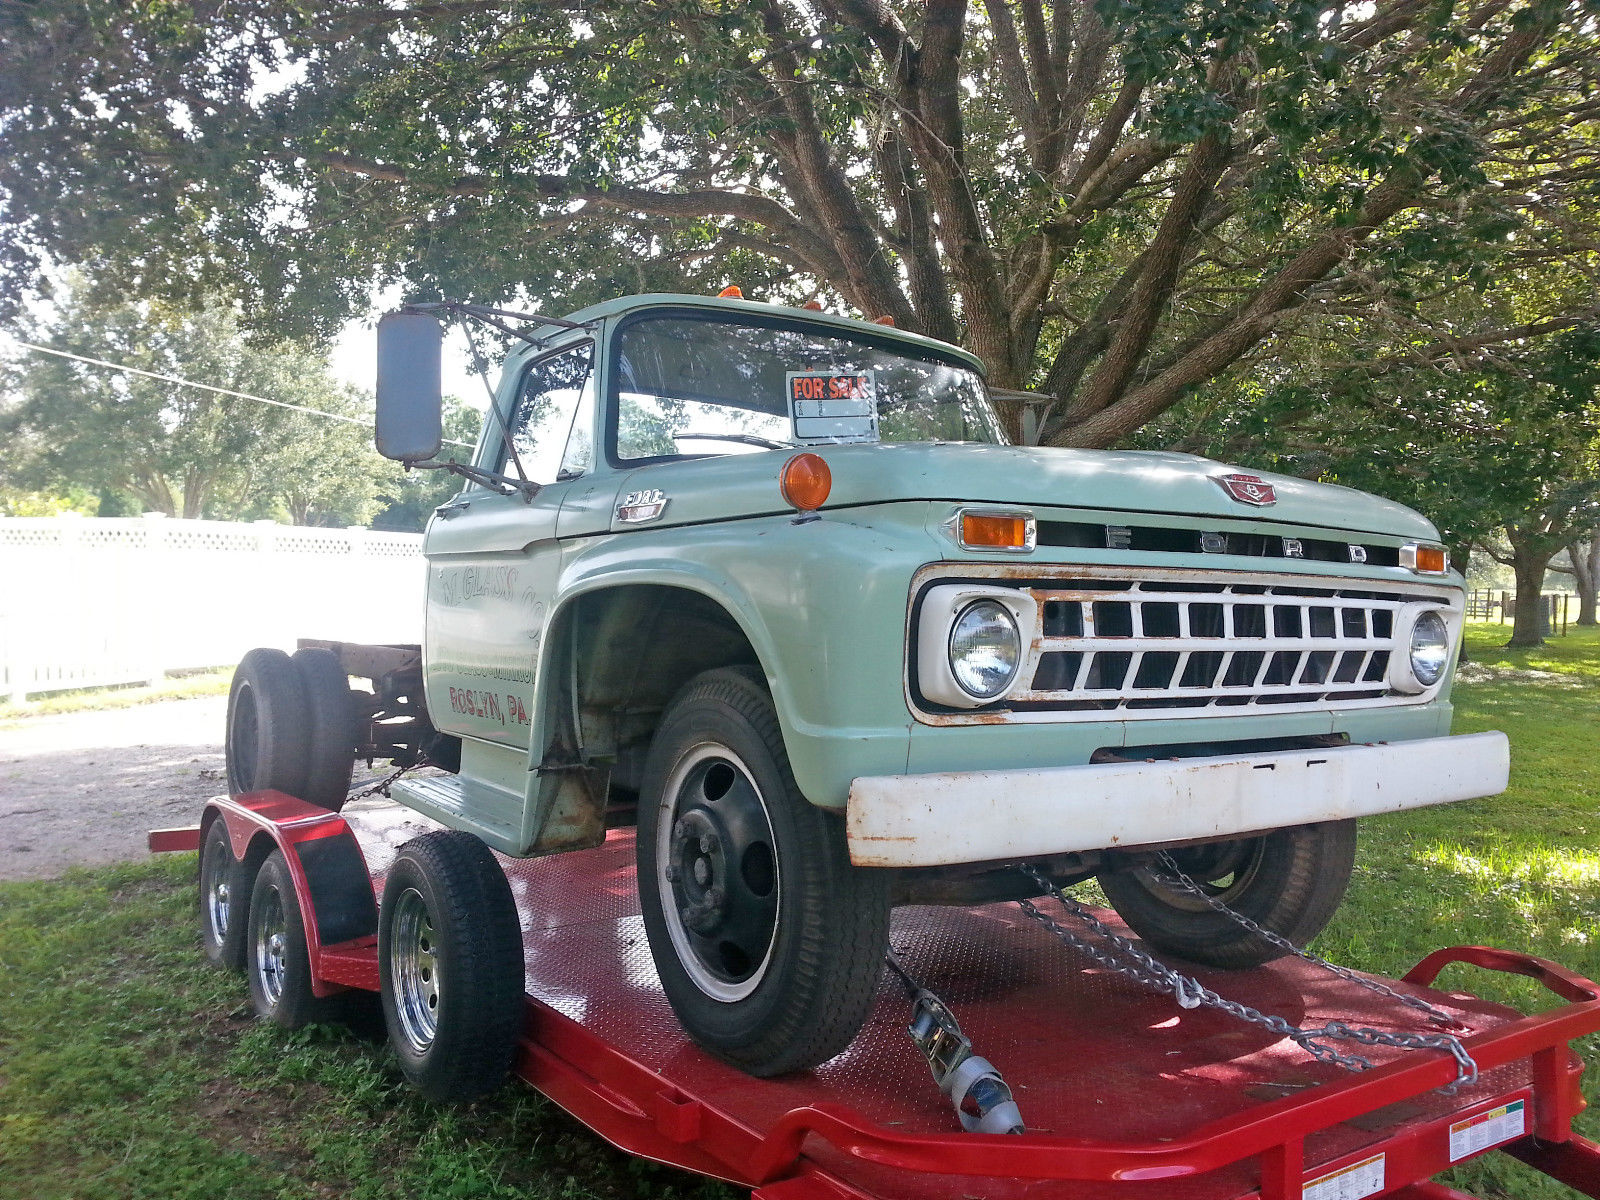 Ford f-500 photo - 7